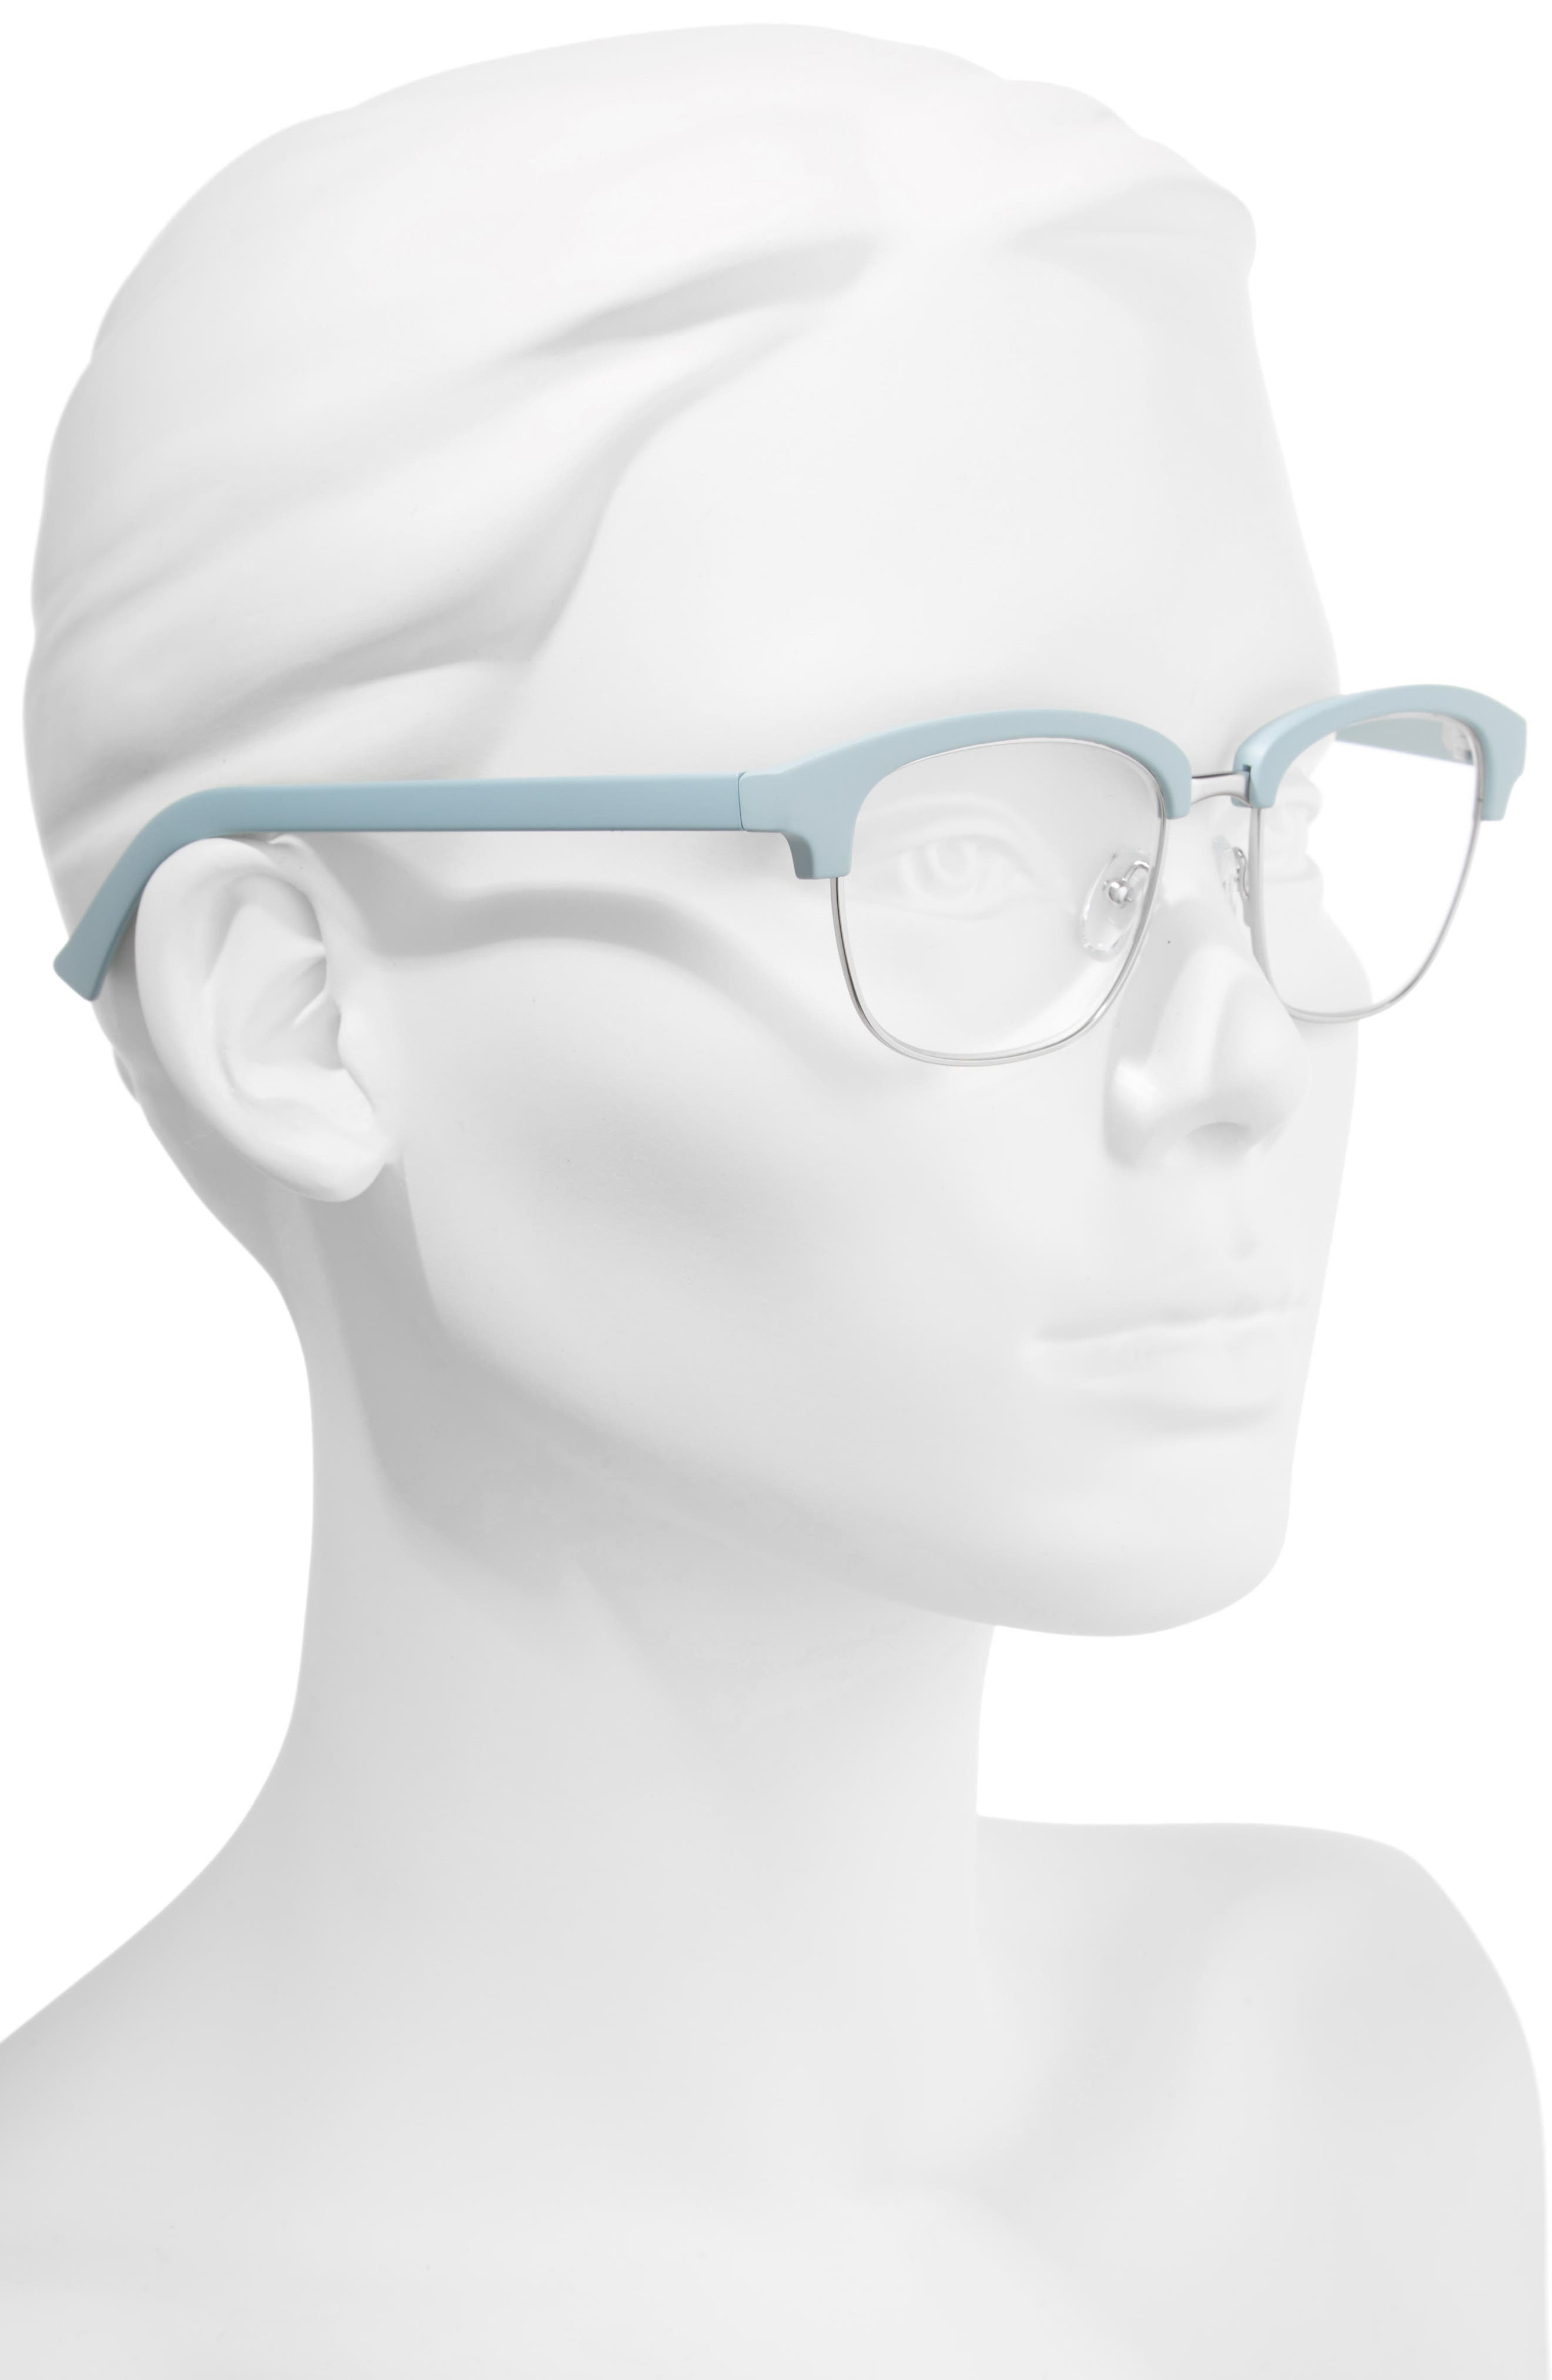 One Drew Over the English Test 52mm Reading Glasses,                             Alternate thumbnail 2, color,                             Sky/ Silver